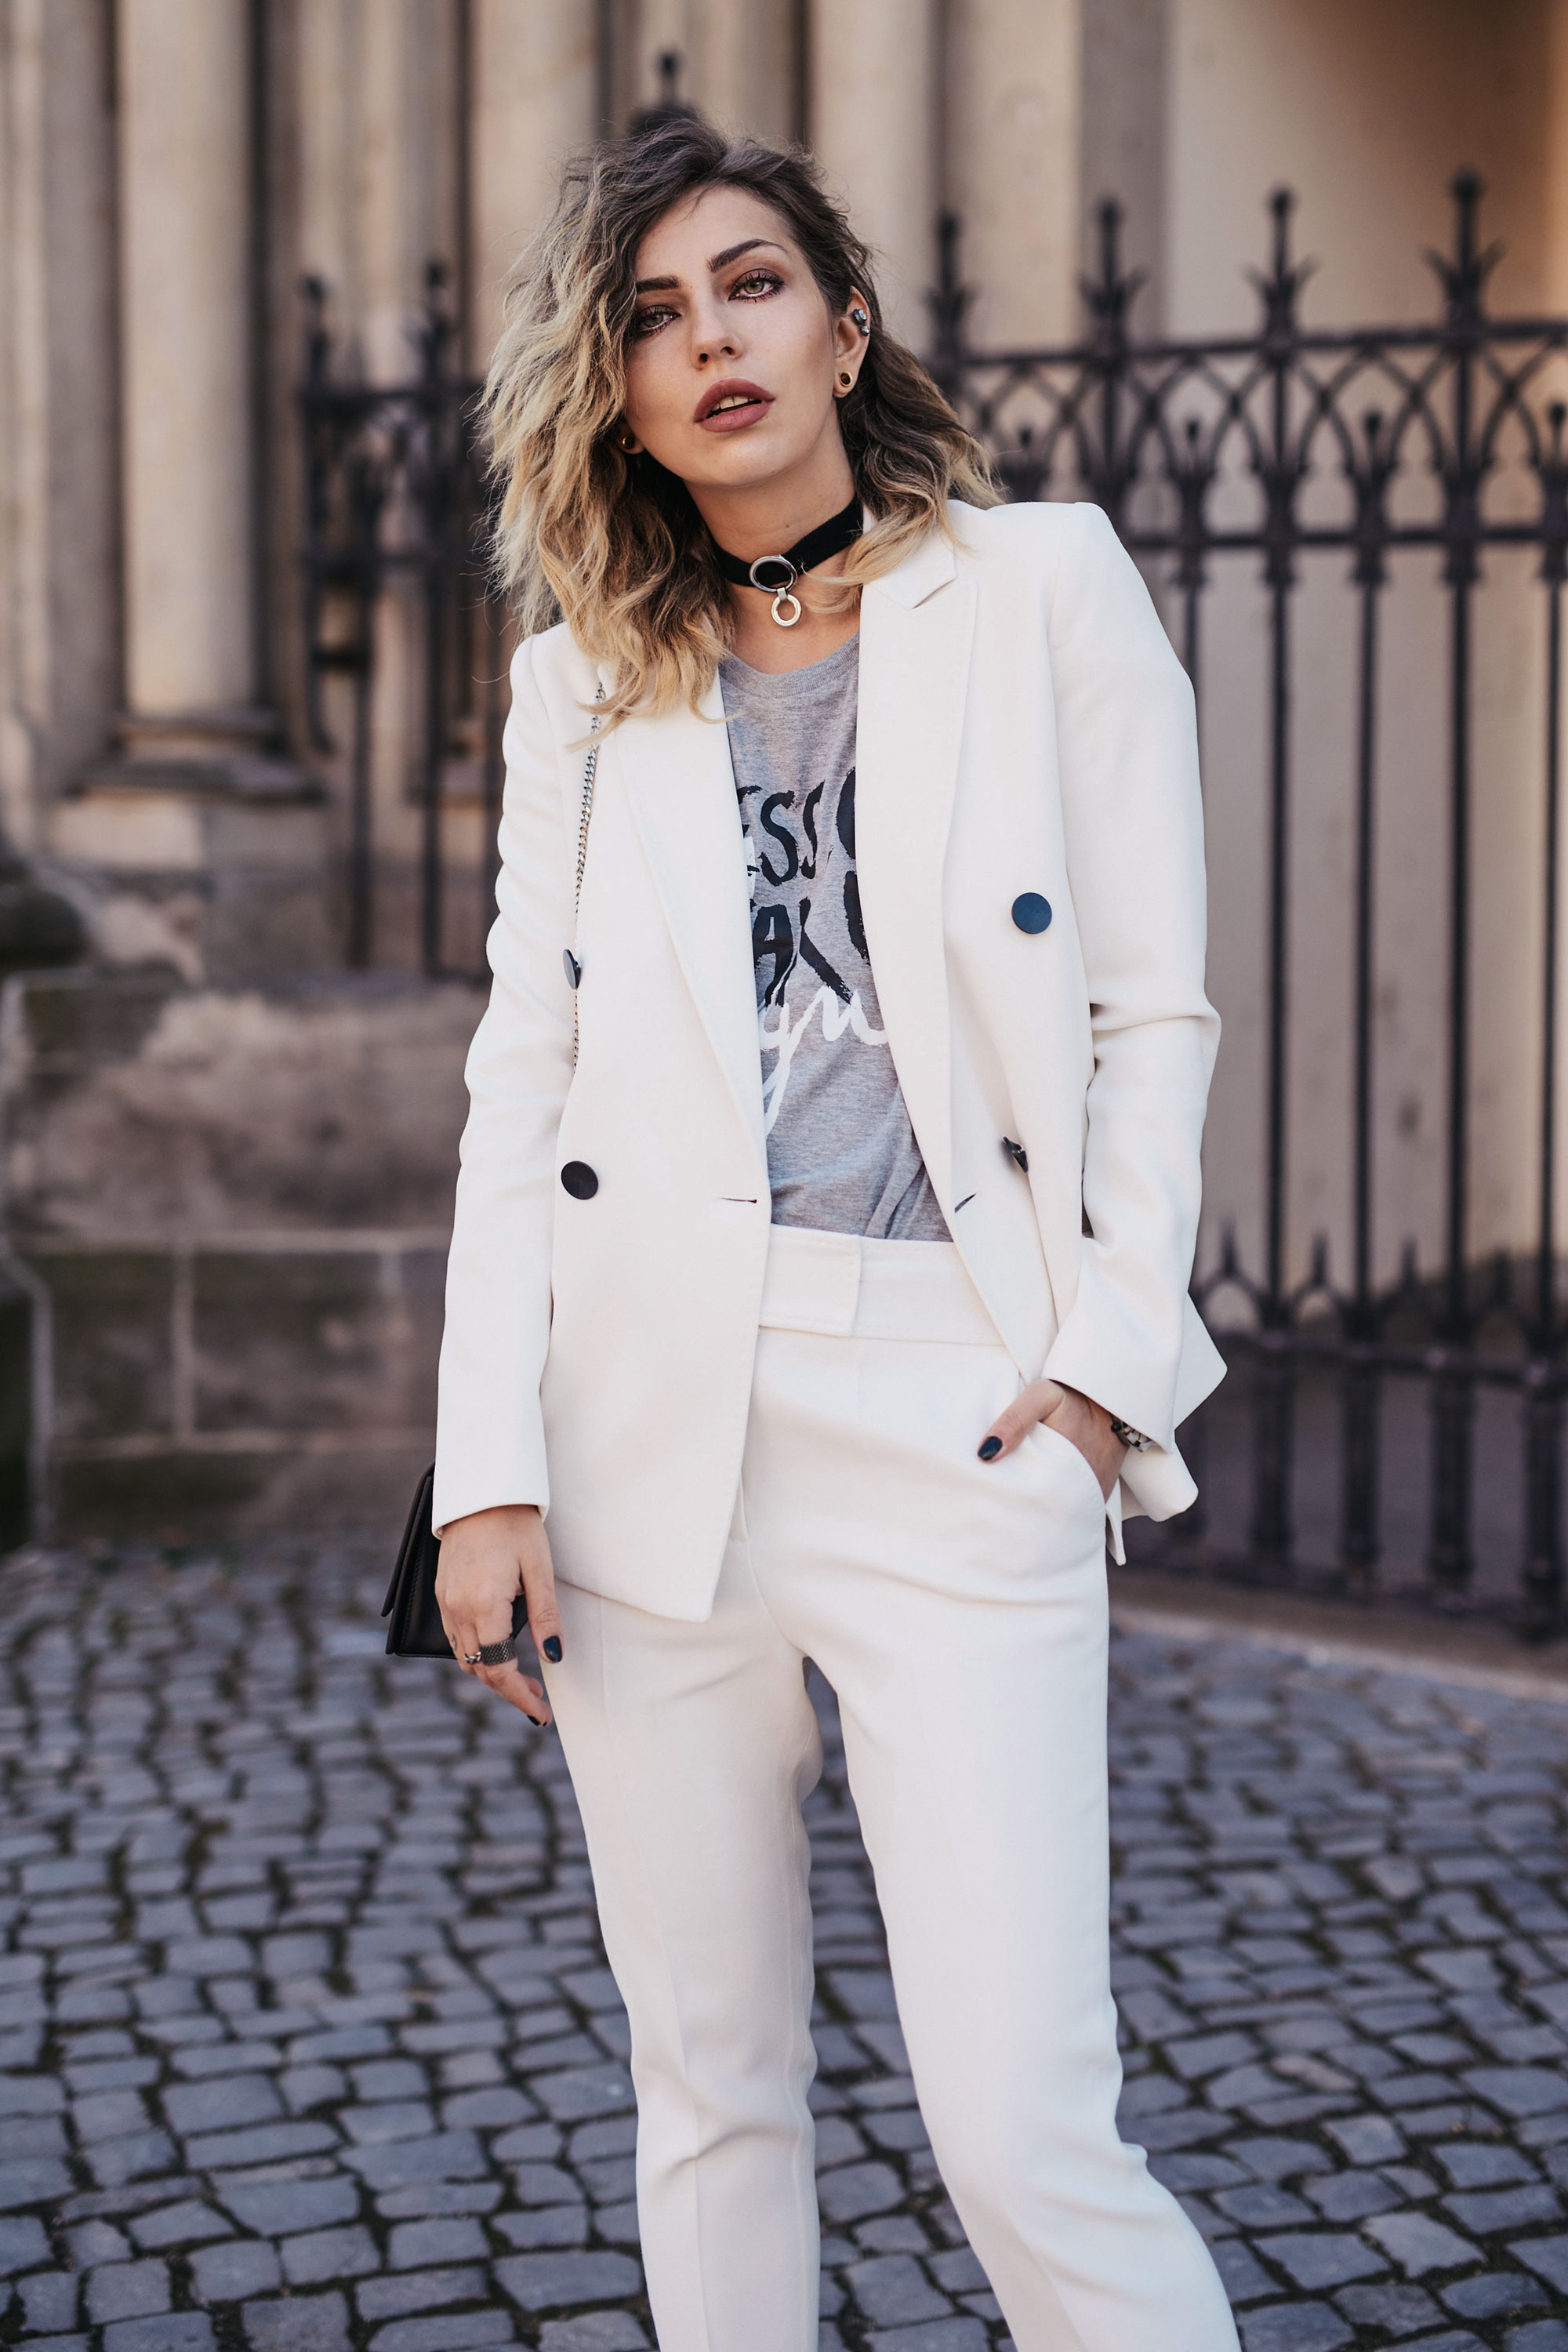 How to wear a white two piece and some thoughts about the Insta-Hate | Instagram, Instagate | style: cool, business, chic, effortless, minimalist, boyish, tomboy | taken by: Masha Sedgwick, Blogger from Berlin